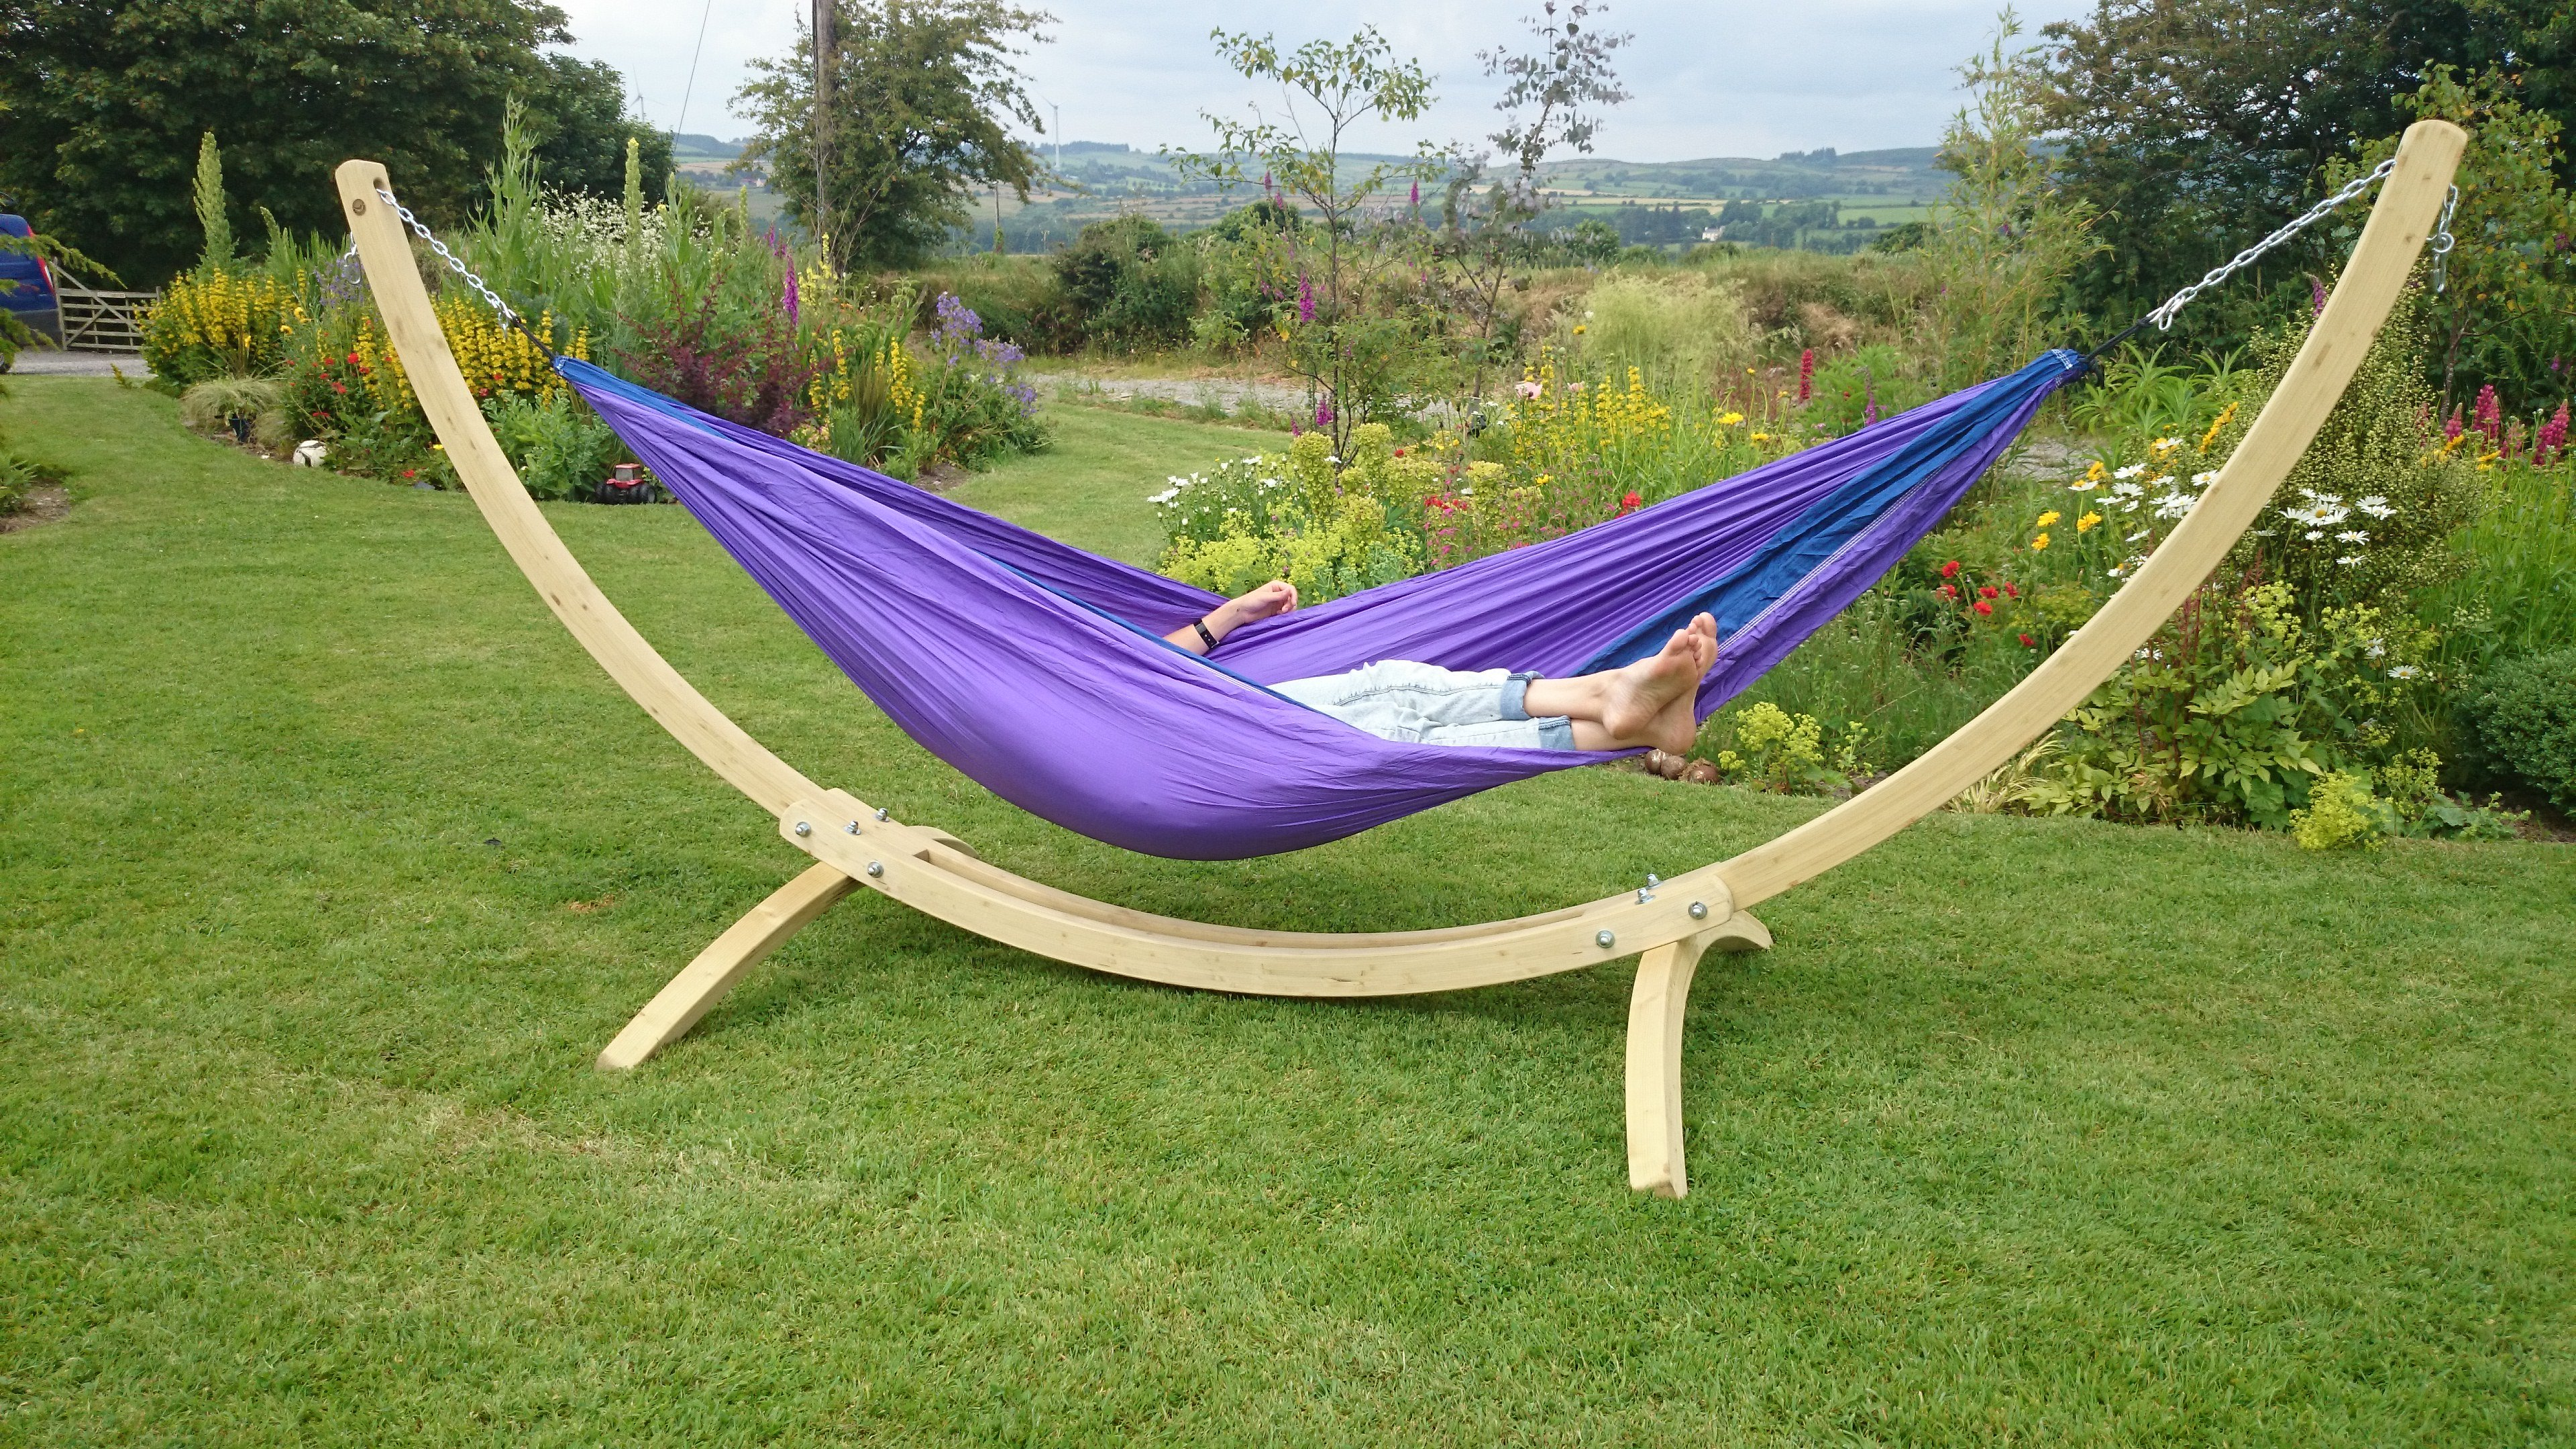 hammocks and outdoor lounging you canopies backyard pin for garden relax within up your required to range hammock more no the two trees anywhere a framed frees in spaces hosta version daybeds